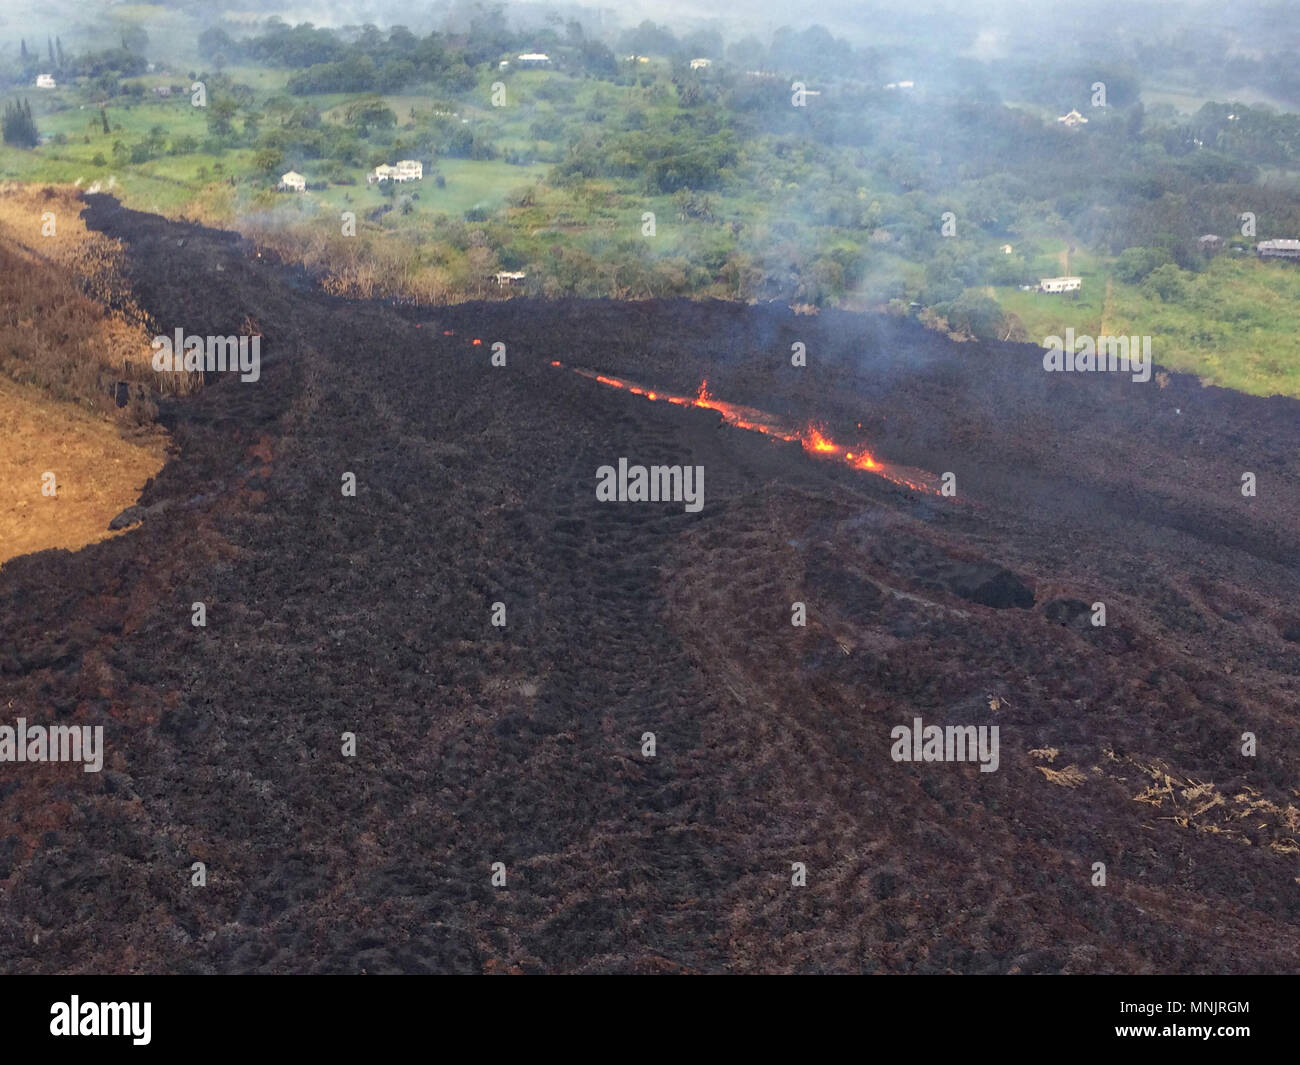 Lava and poisonous sulfur dioxide plumes rise from fissure 17 along the eastern rift caused by the eruption of the Kilauea volcano May 17, 2018 in Pahoa, Hawaii. The recent eruption continues destroying homes, forcing evacuations and spewing lava and poison gas on the Big Island of Hawaii.Stock Photo